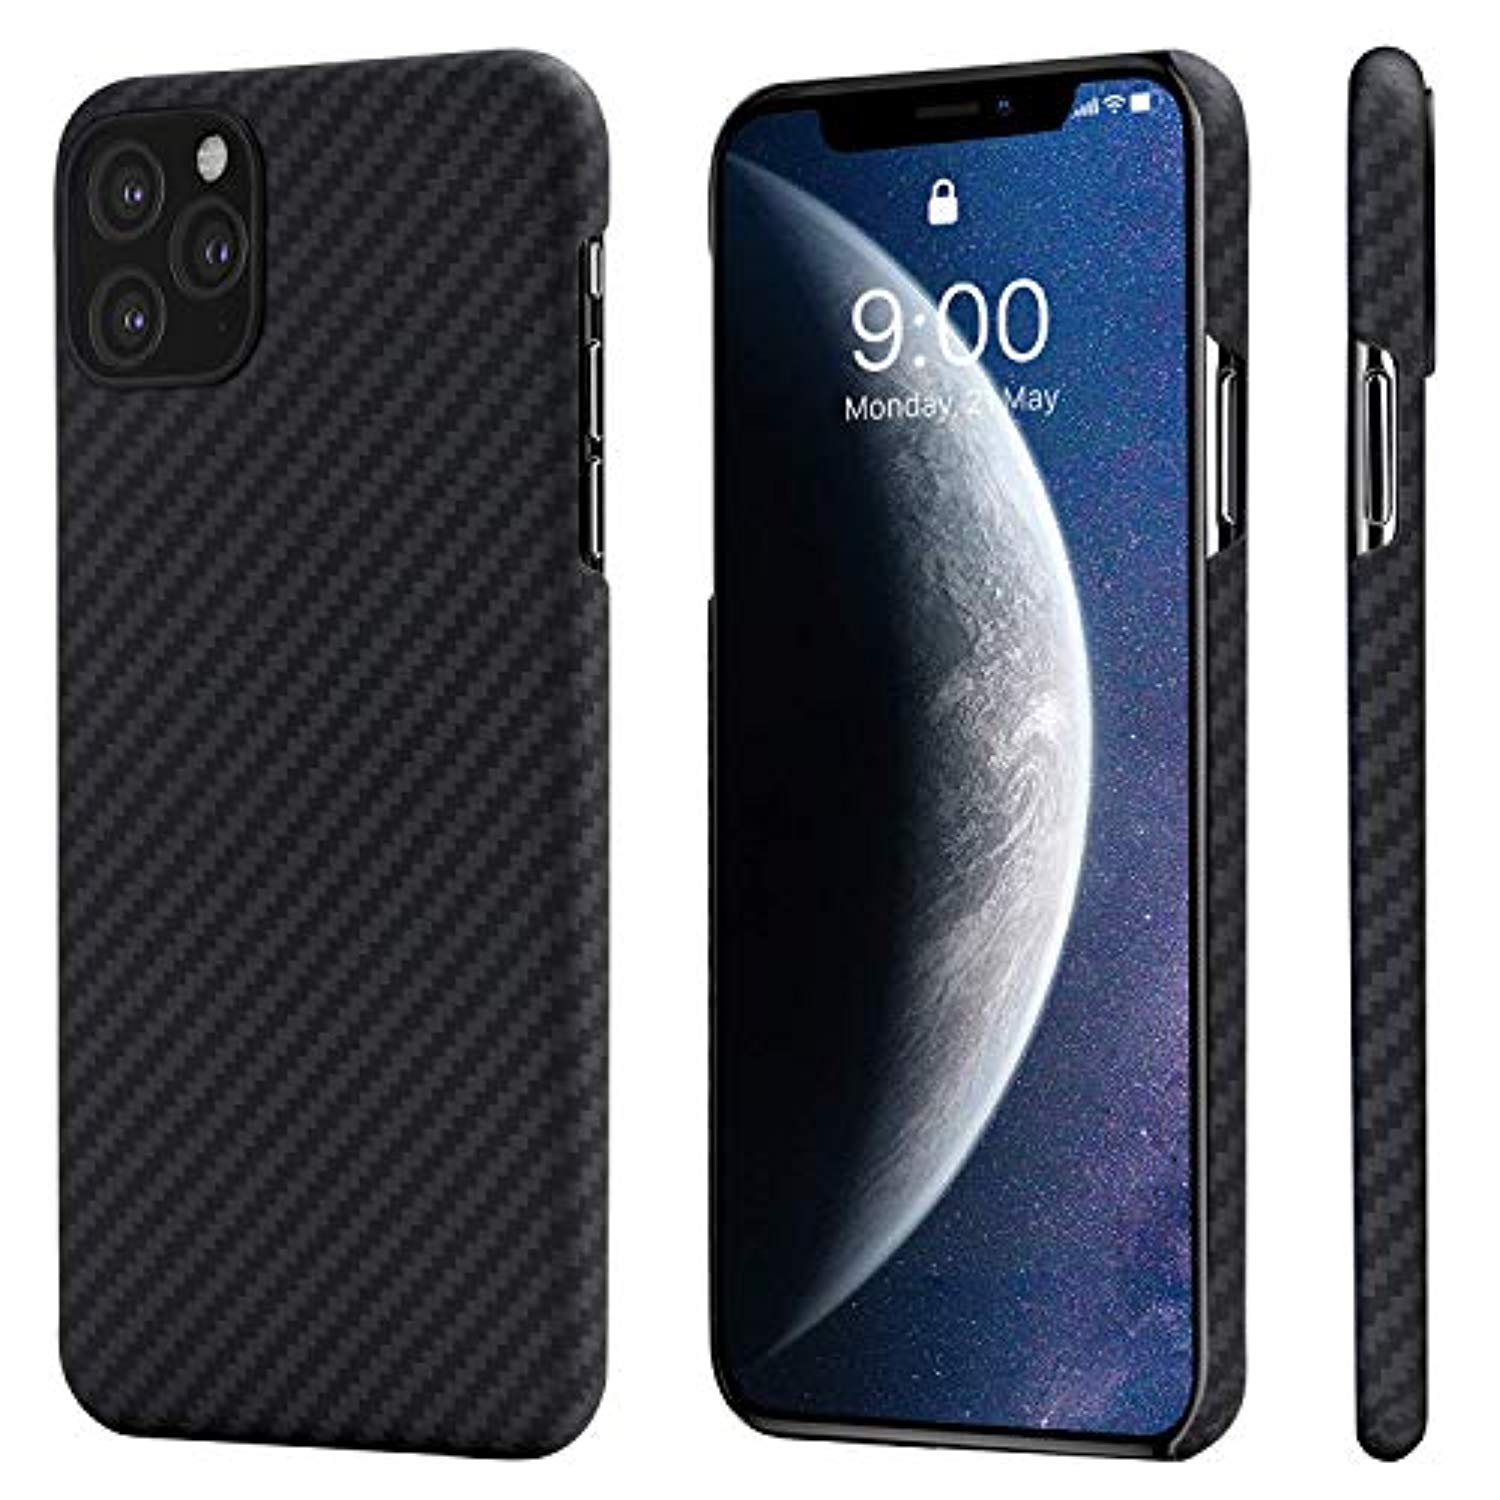 Soft Super Shockproof Armor Carbon Fiber Case For Iphone 11 Pro Max XS XR X 6 6S 7 8 Plus